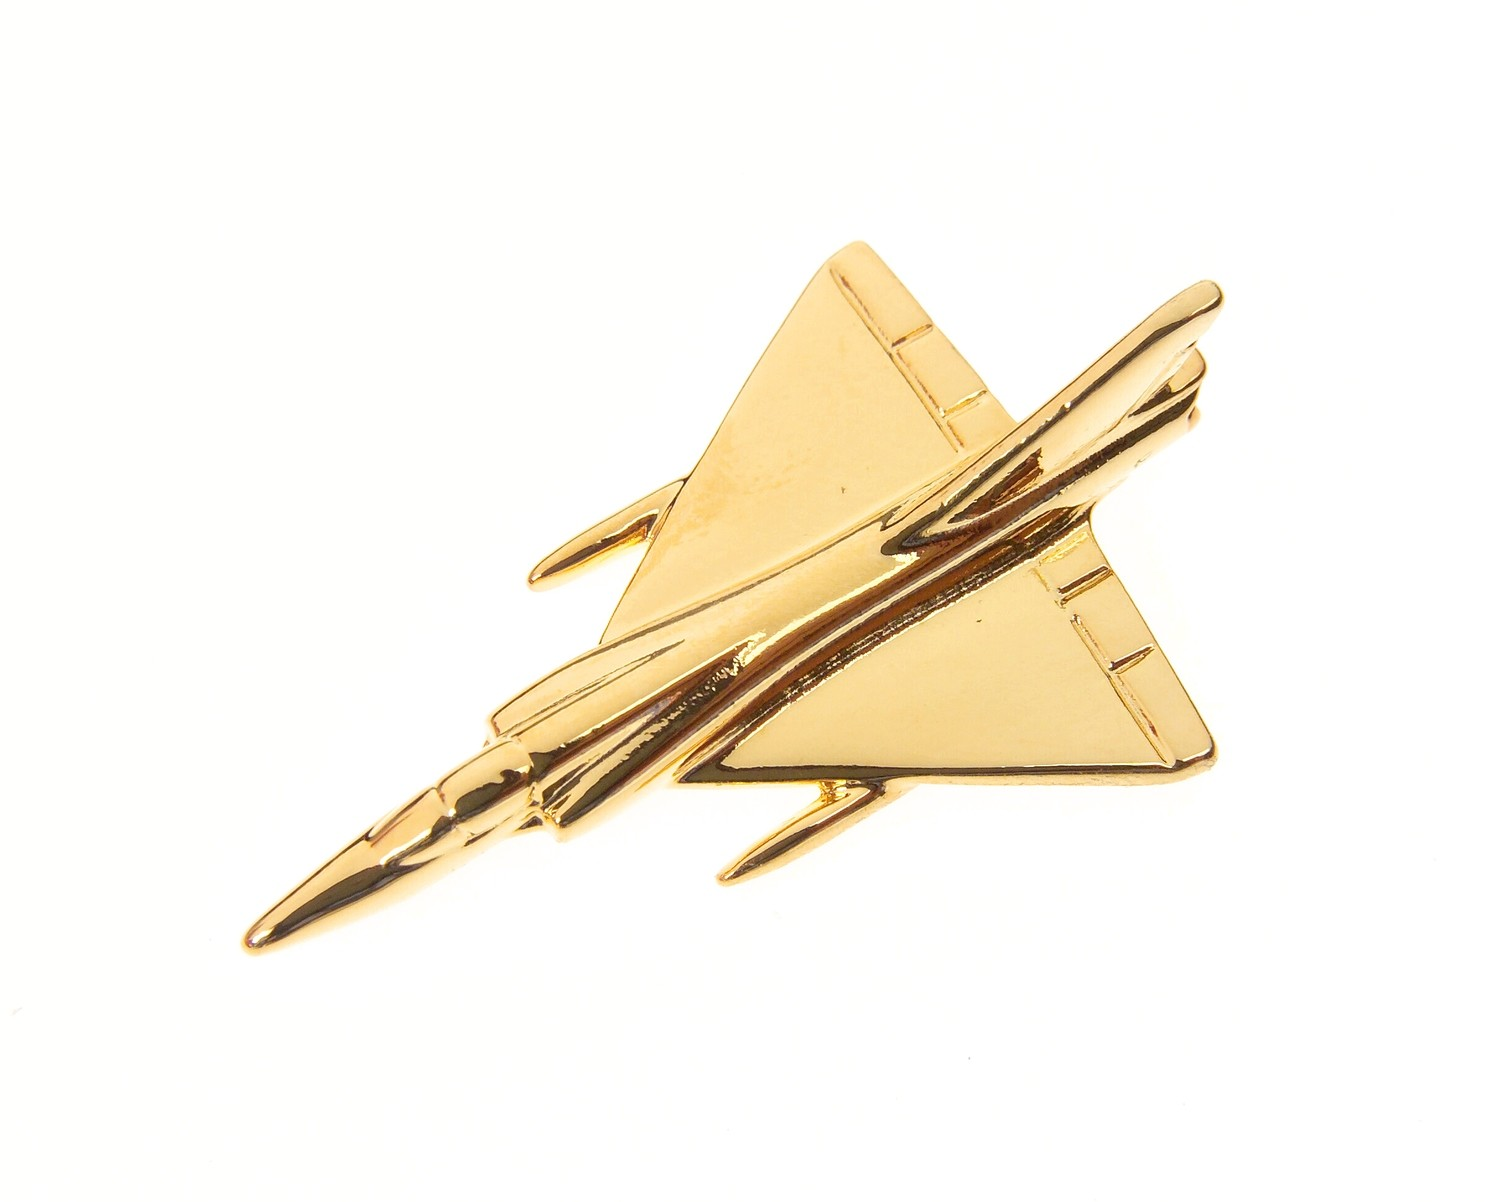 Mirage III Gold Plated Tie / Lapel Pin